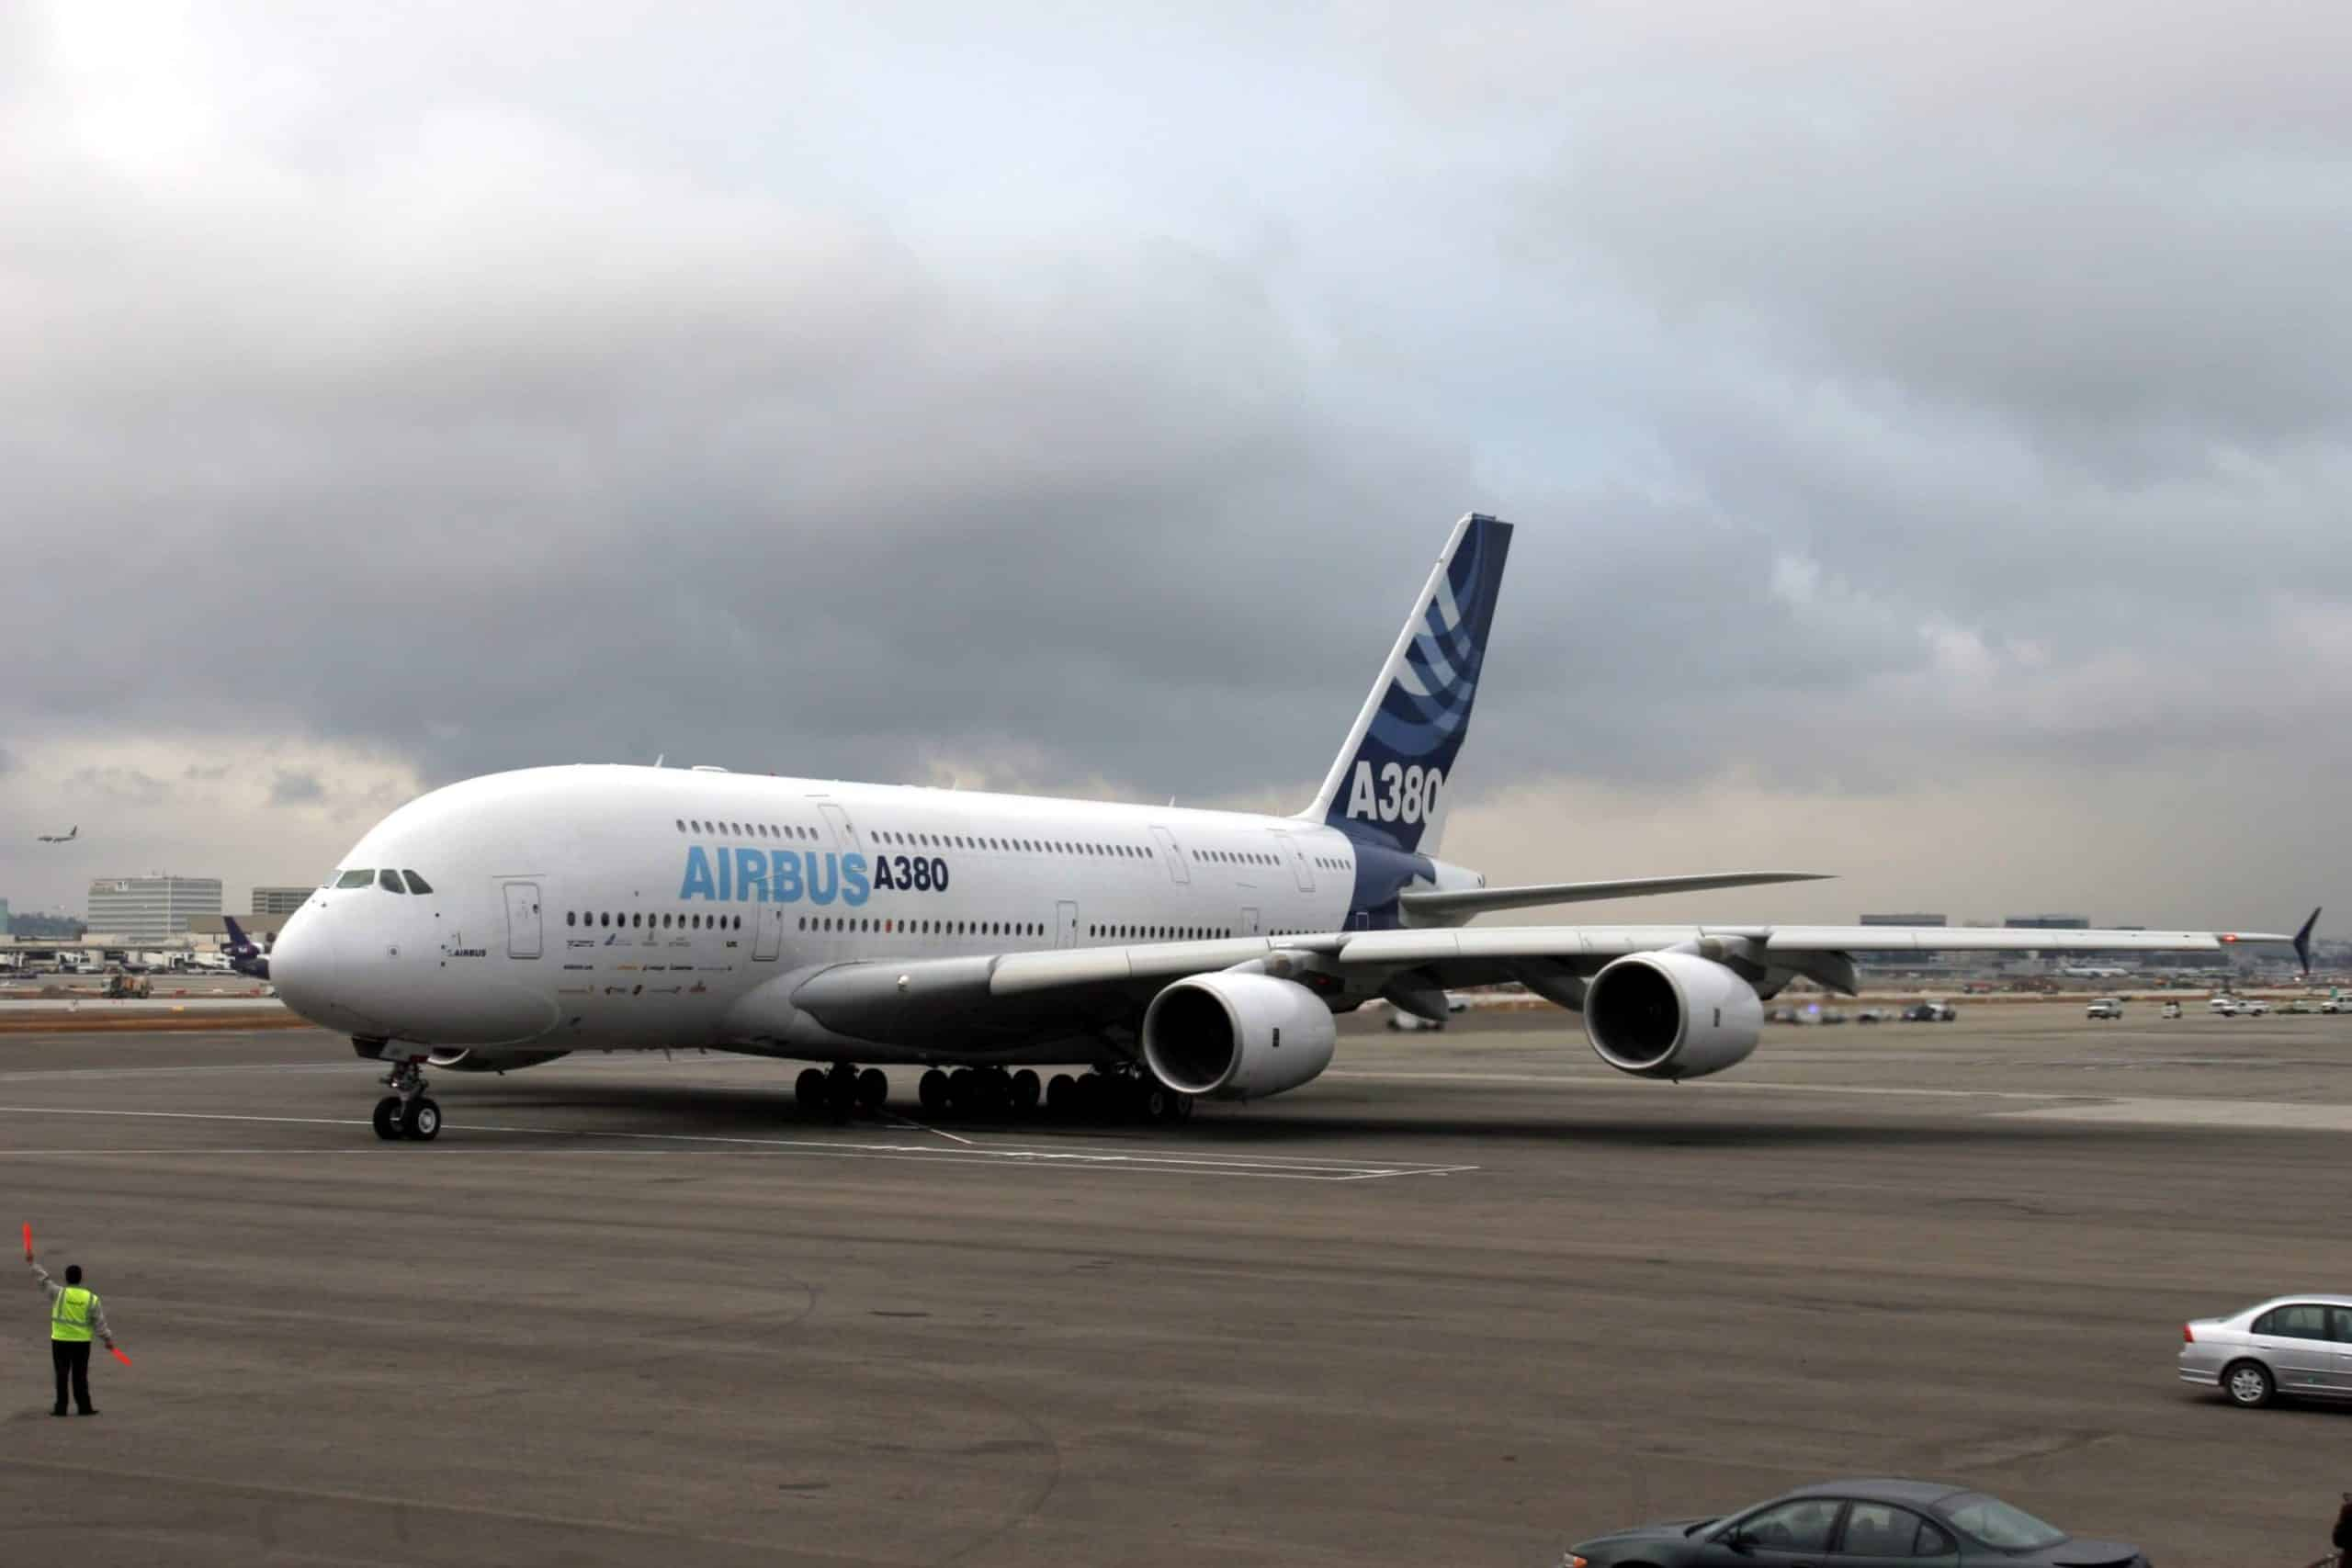 Airbus Decide to no Longer Produce A380 Superjumbo